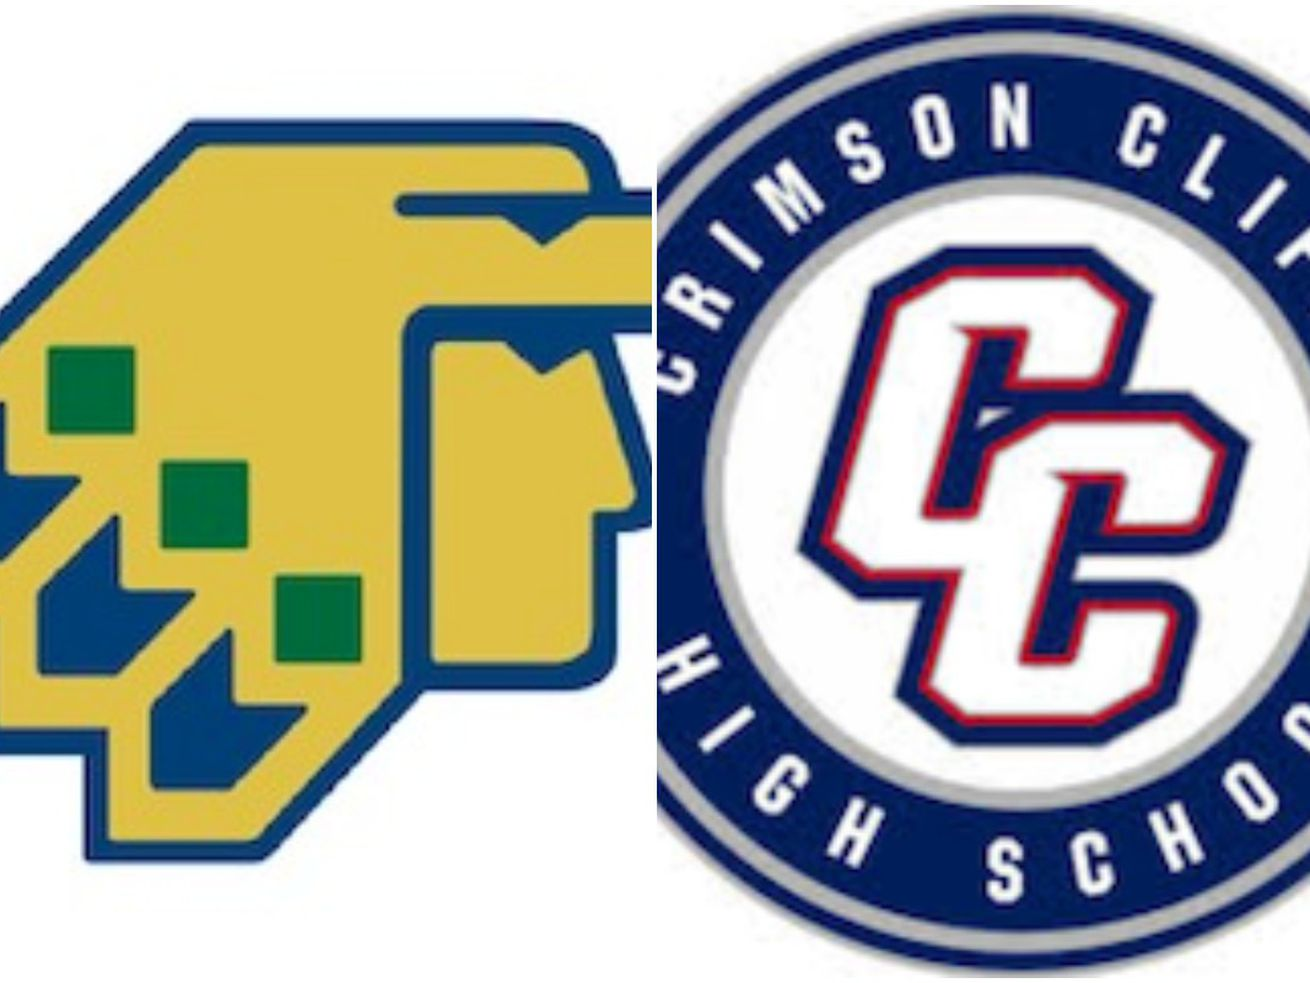 High school soccer: Higher seeds prevail in five of eight 4A second round games, led by Snow Canyon and Crimson Cliffs